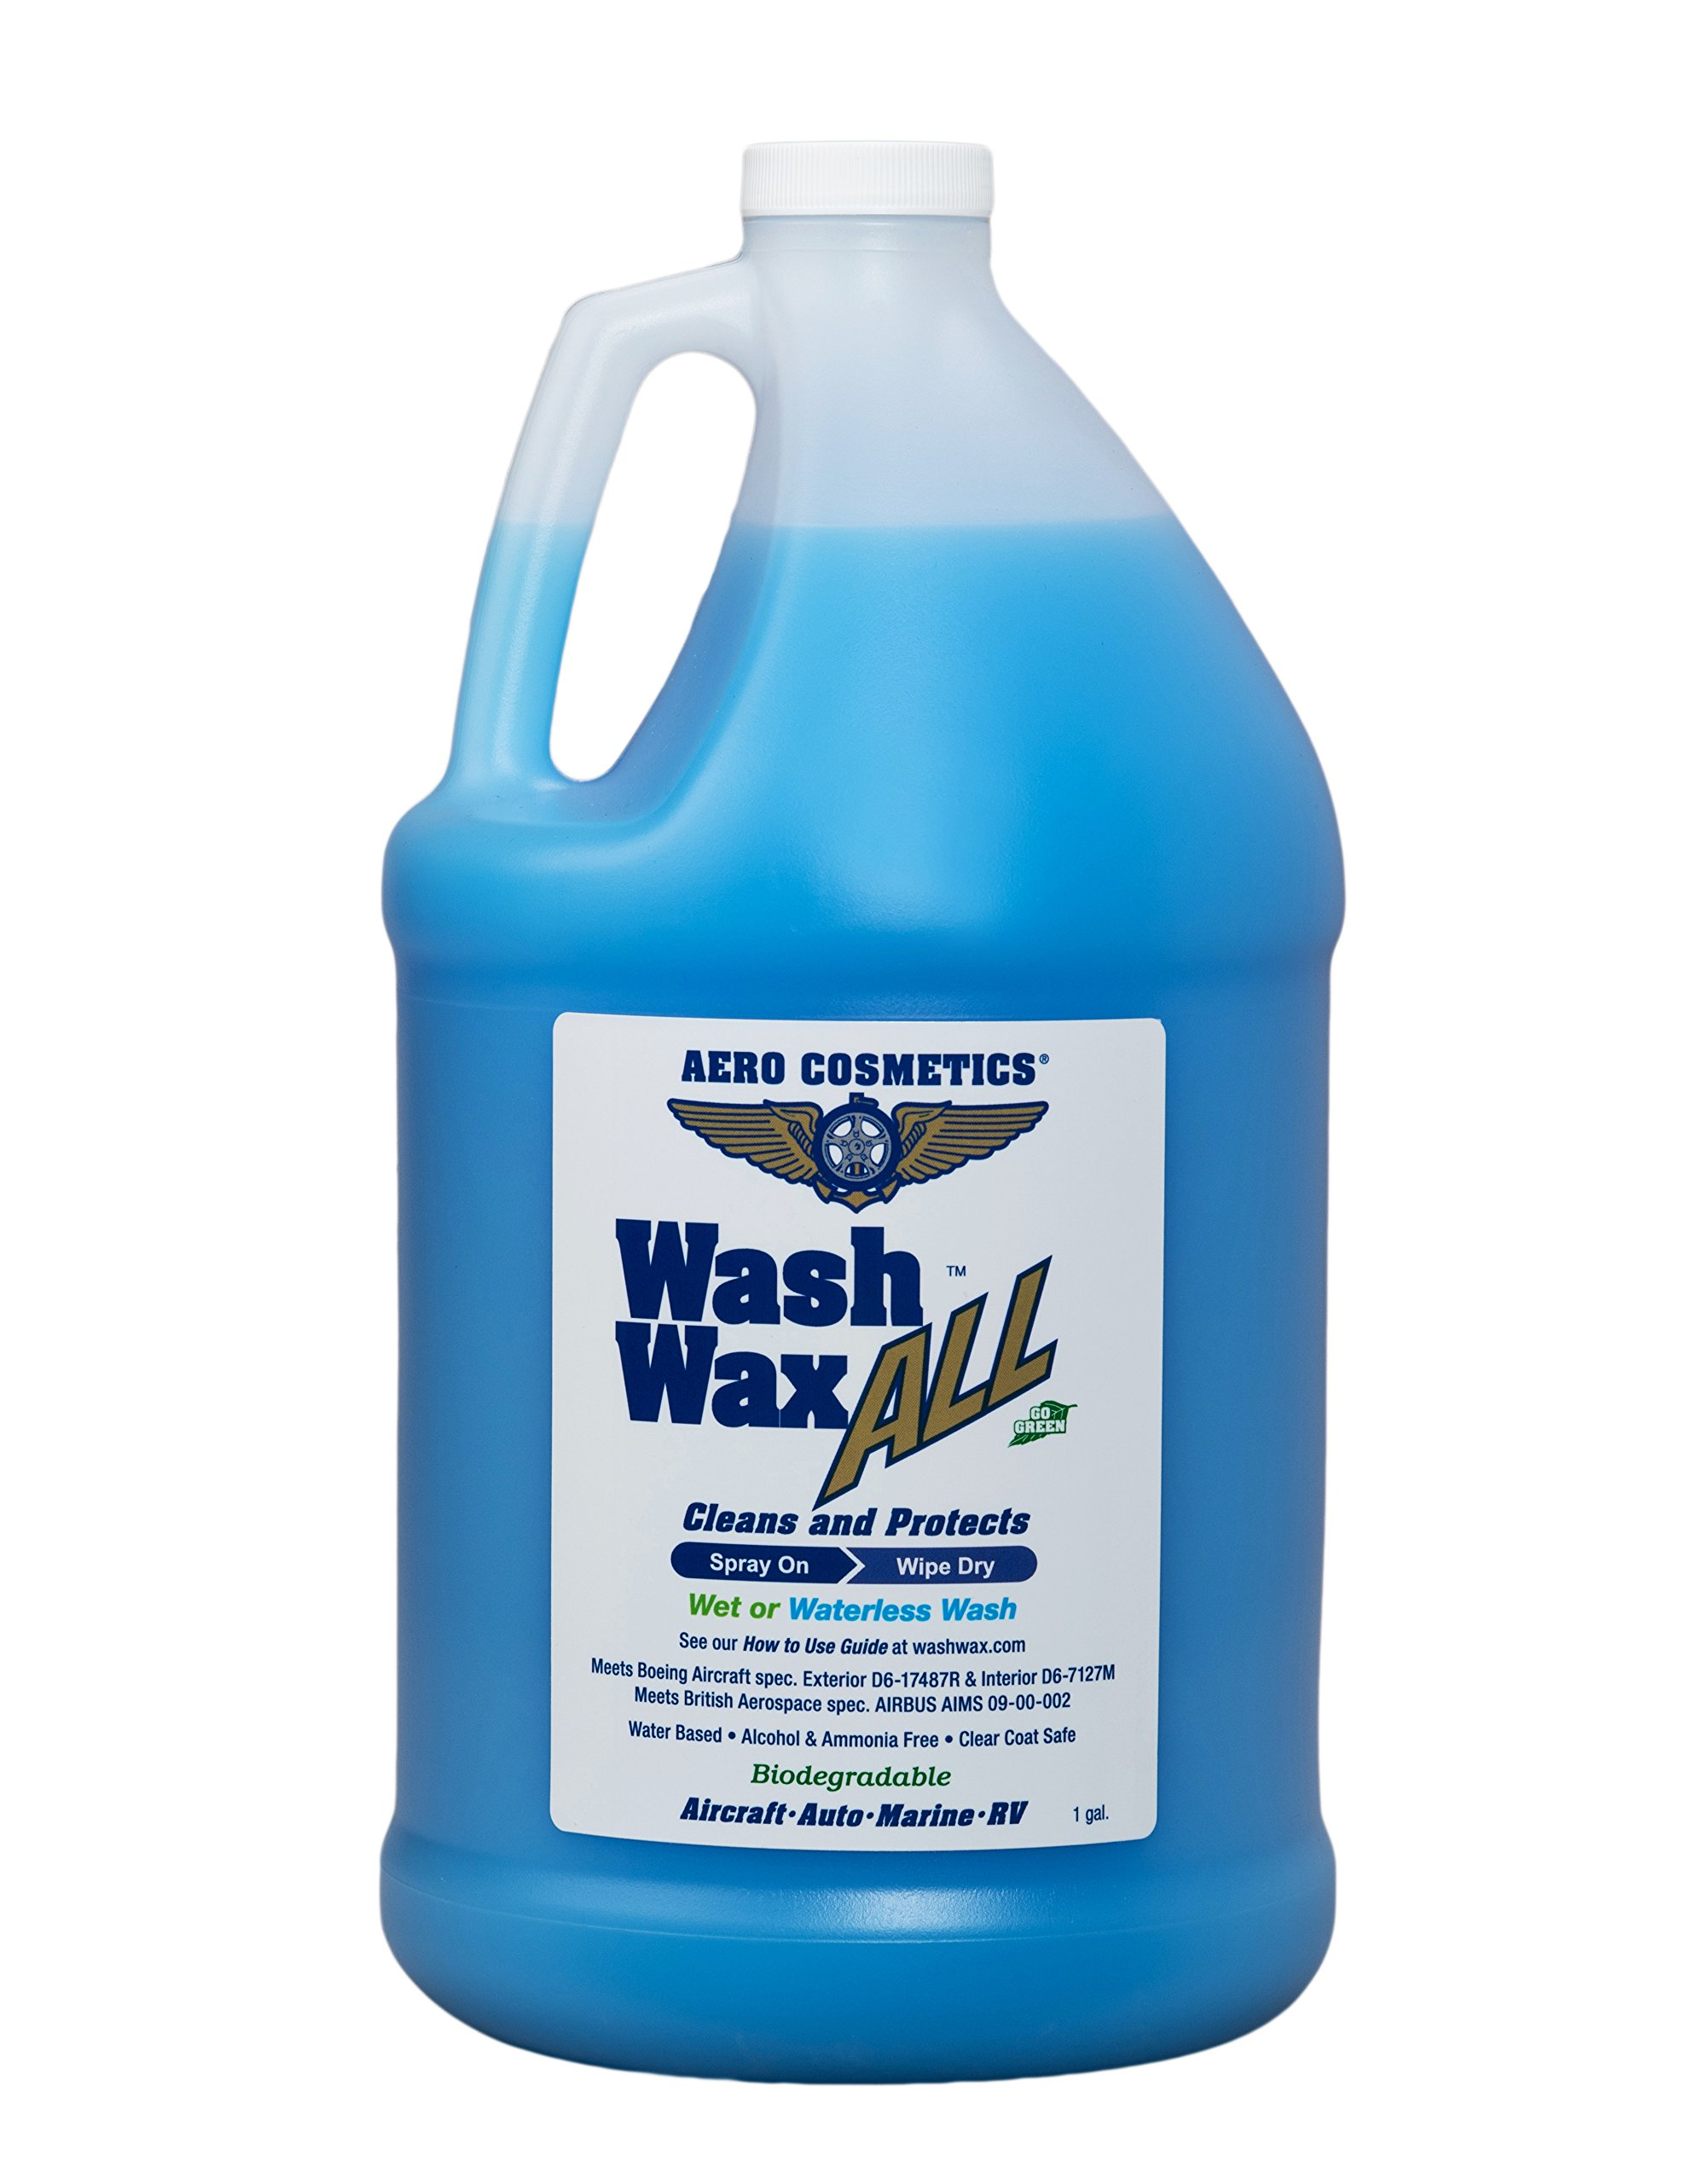 Wet or Waterless Car Wash Wax 128 oz. Aircraft Quality Wash Wax for your Car RV & Boat. Guaranteed Best Waterless Wash on the Market